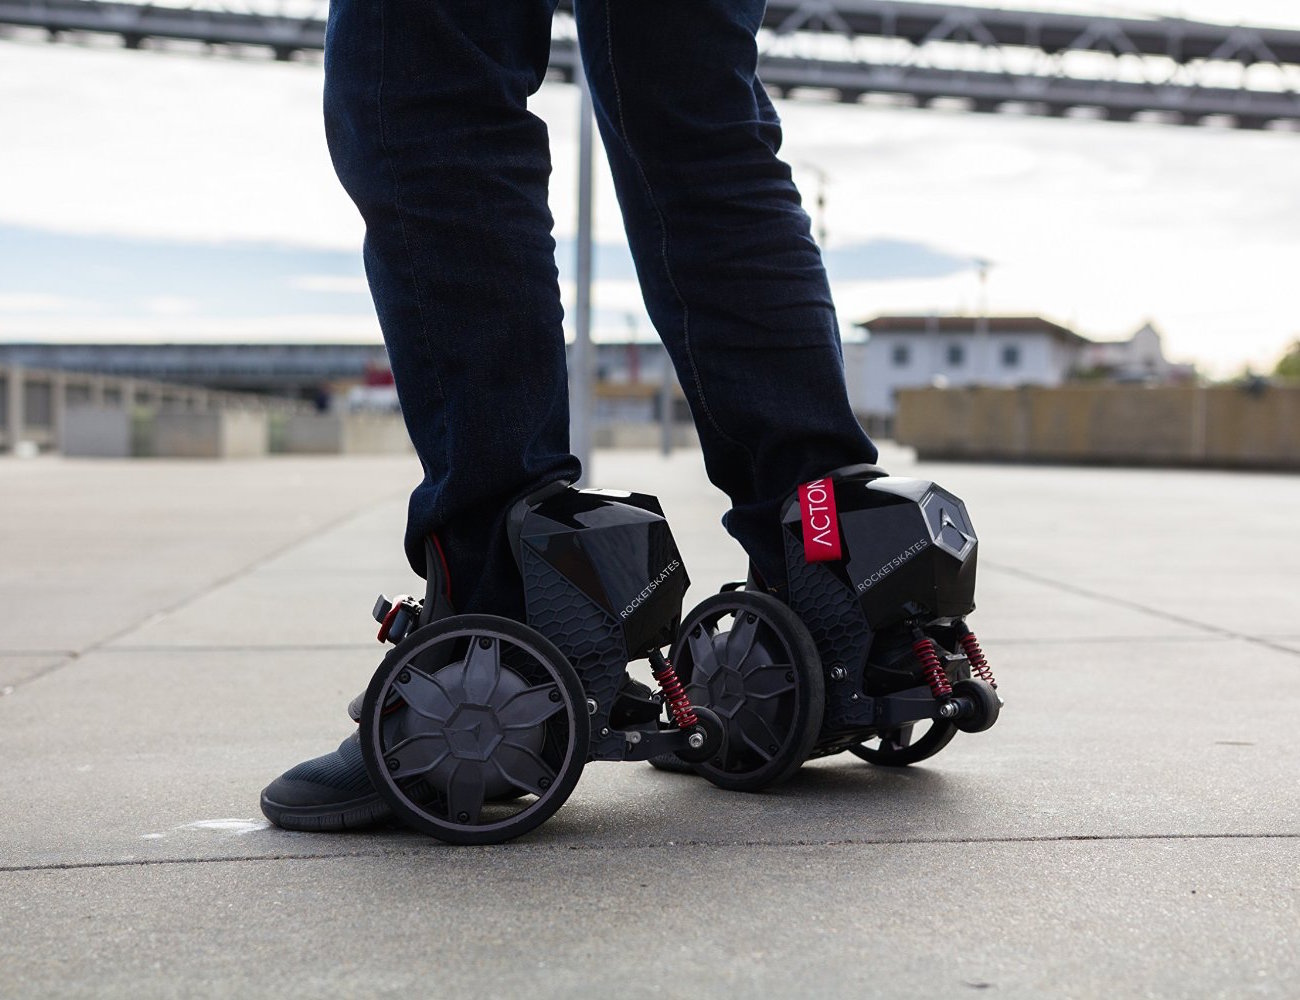 ACTON R10 RocketSkates – The World's First Smart Electric Skates